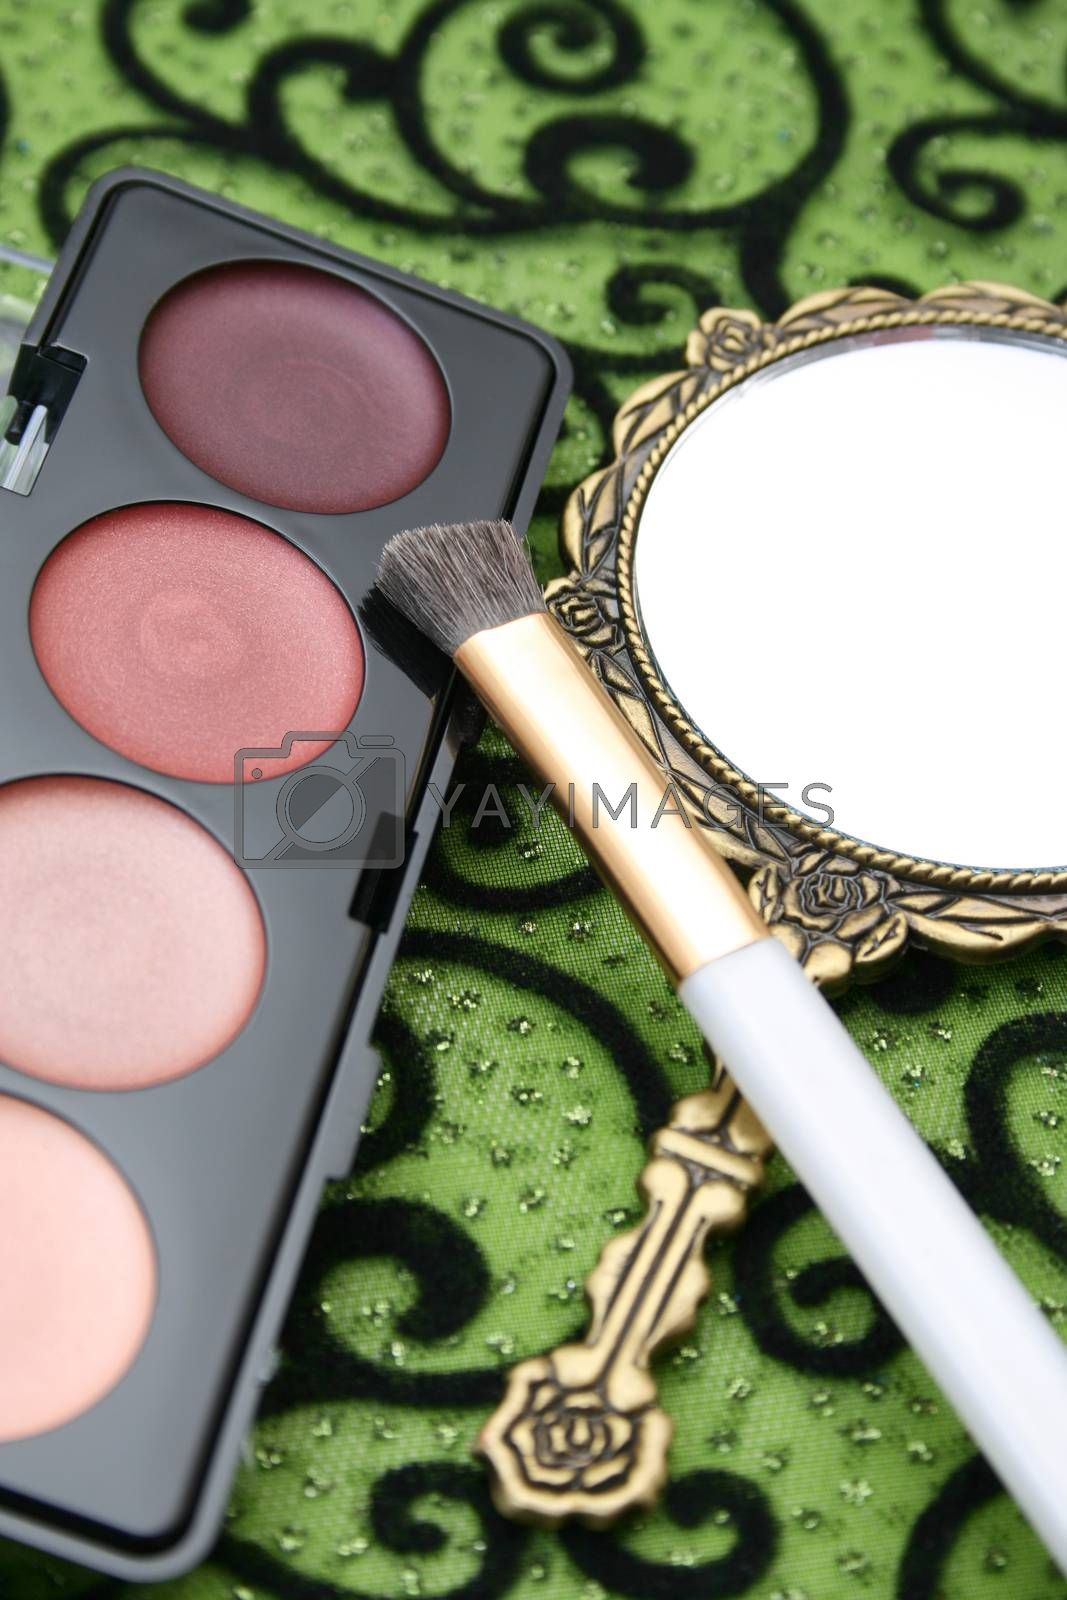 New eyeshadow set with used lipstick and small mirror.